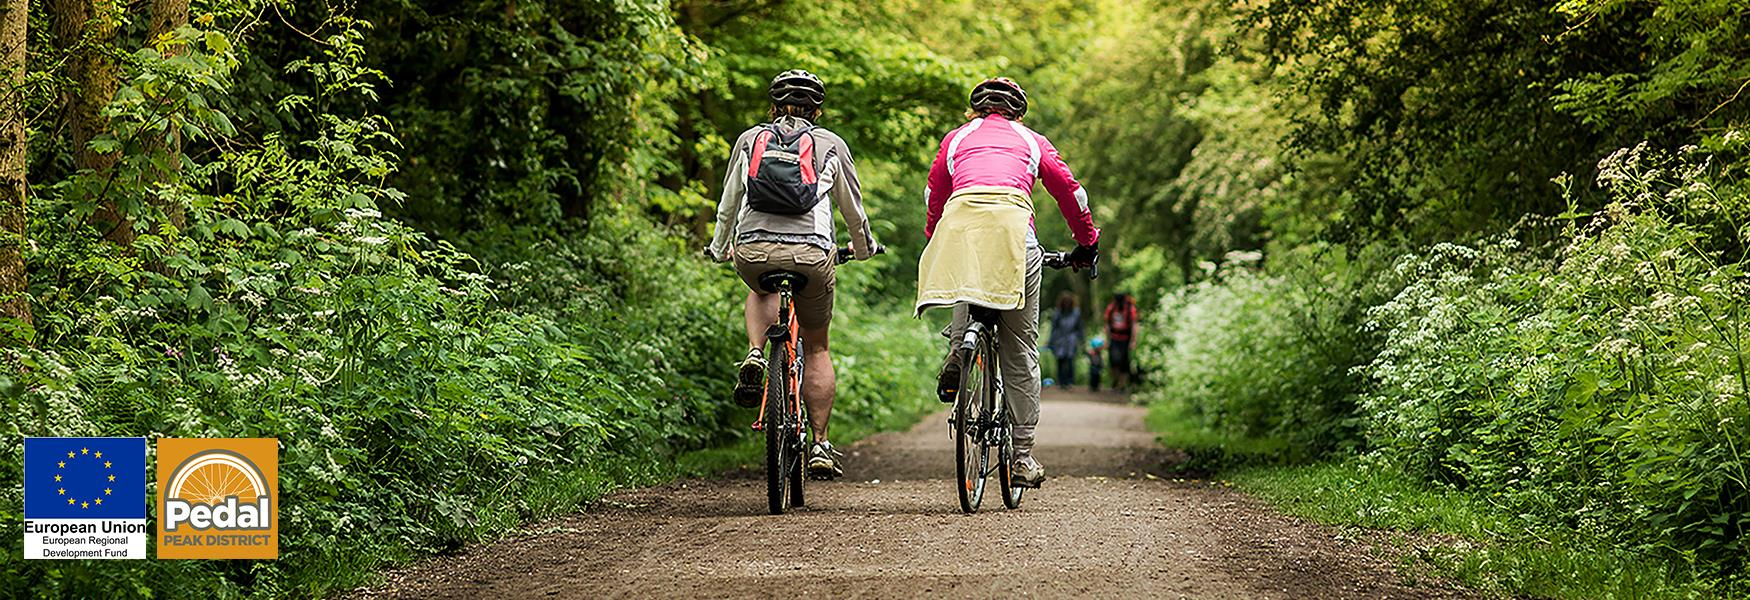 Plan a two-wheeled adventure